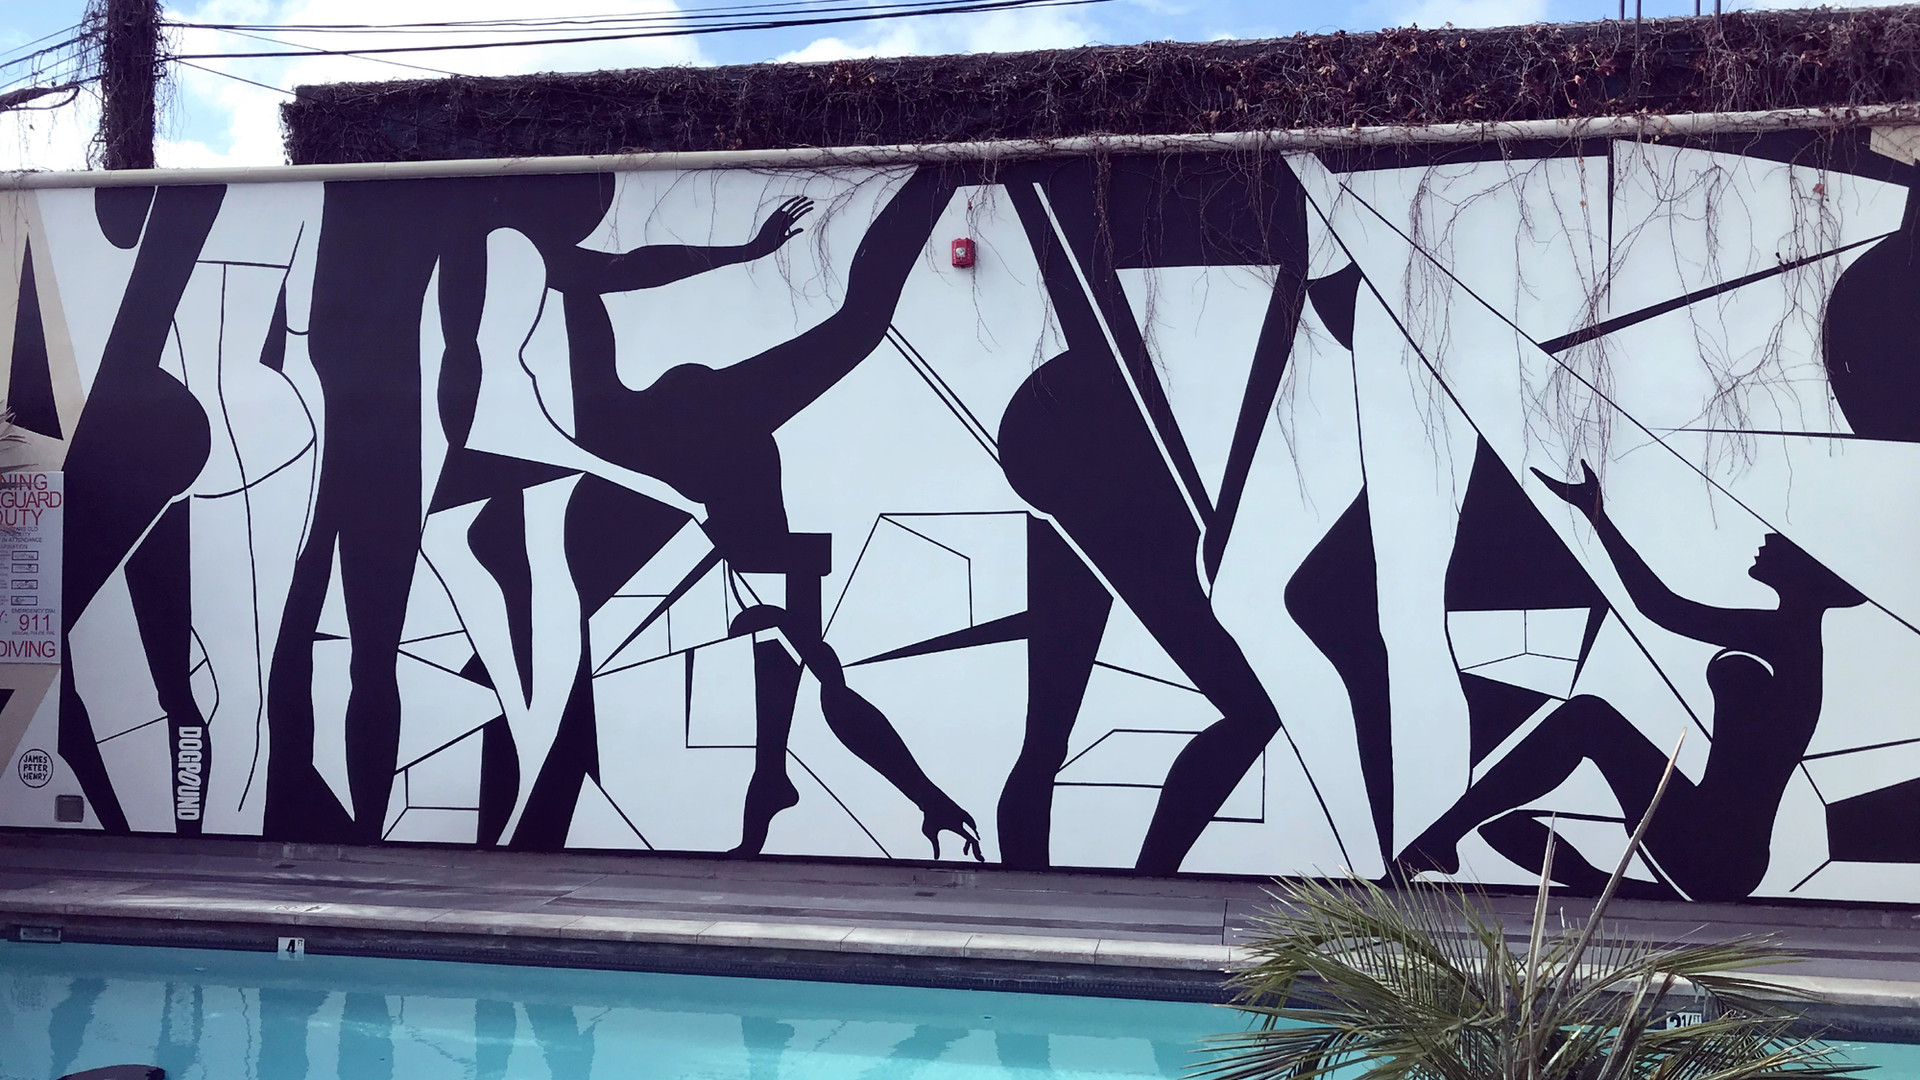 La Peer Hotel Mural - West Hollywood